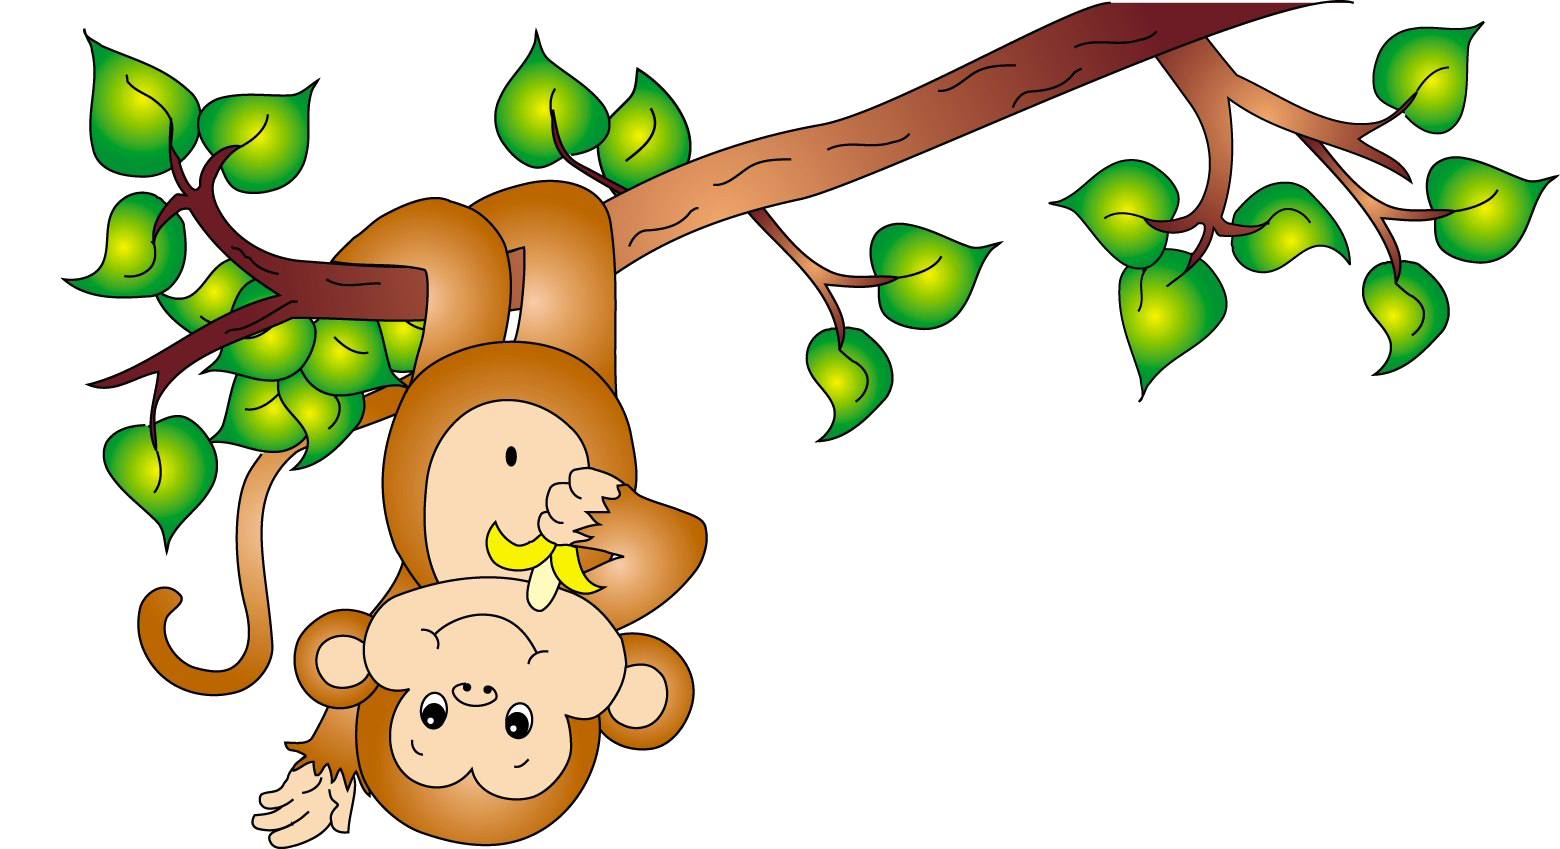 Cute Cartoon Monkey PNG Image Background.